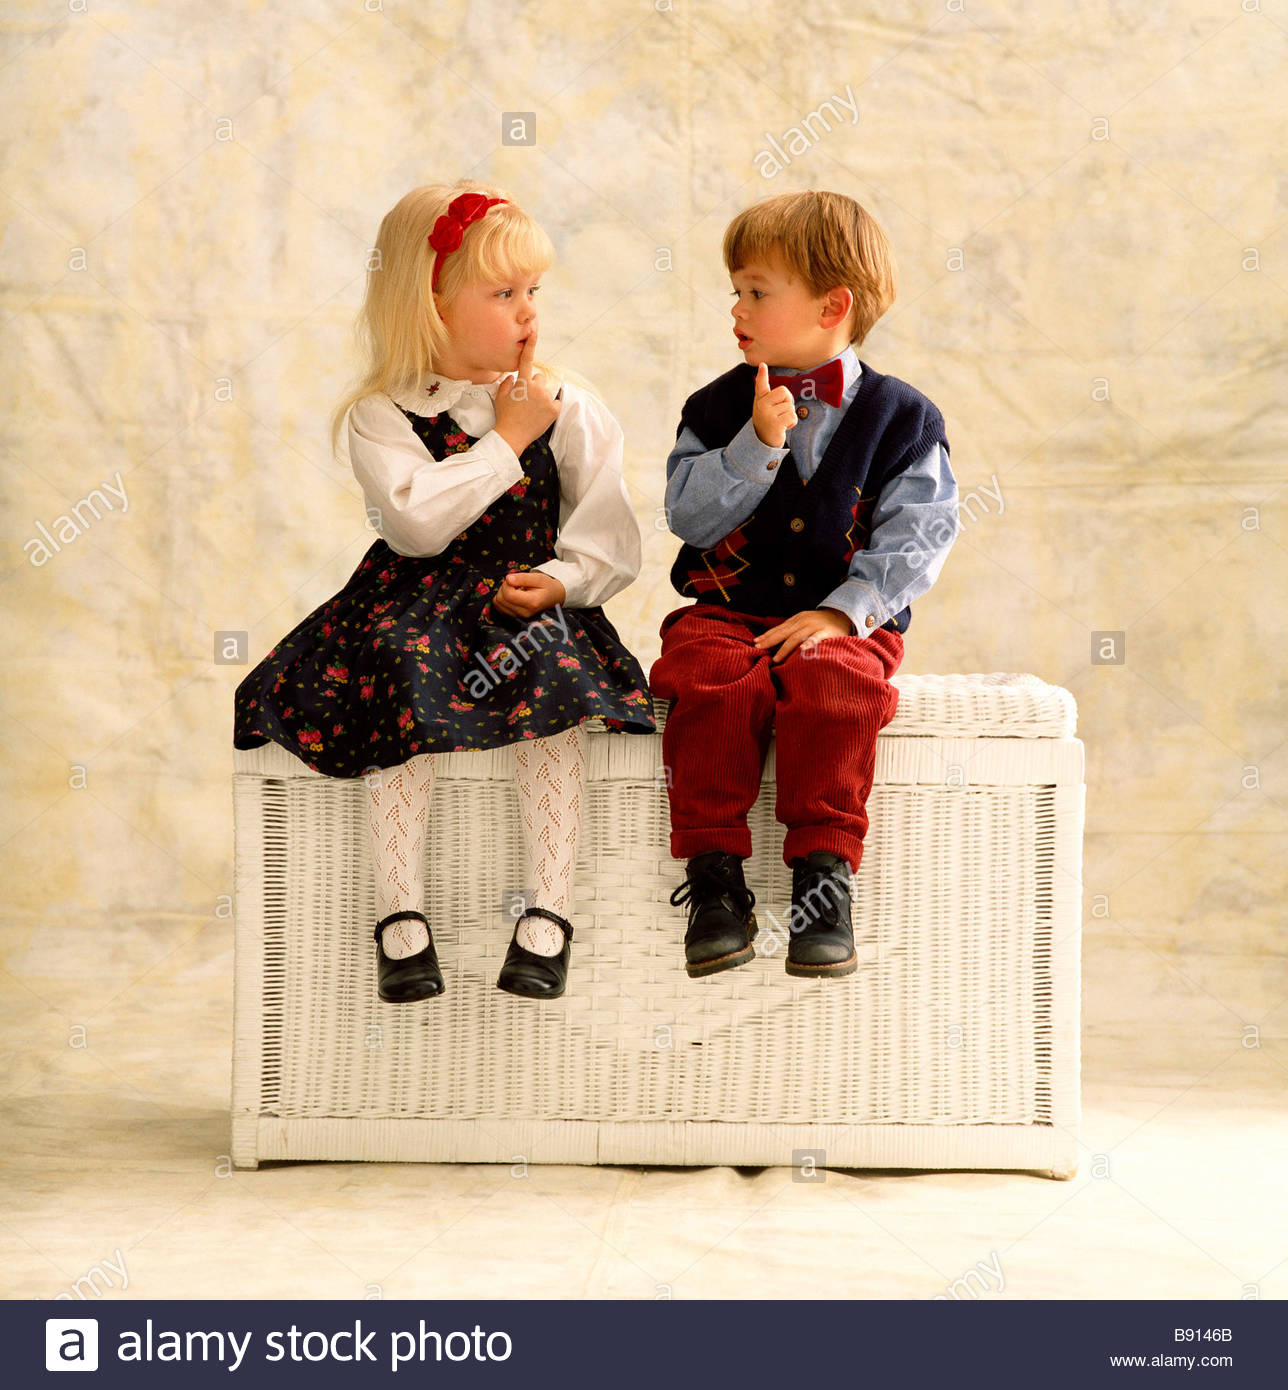 small boy and girl sitting together on a hamper stock photo